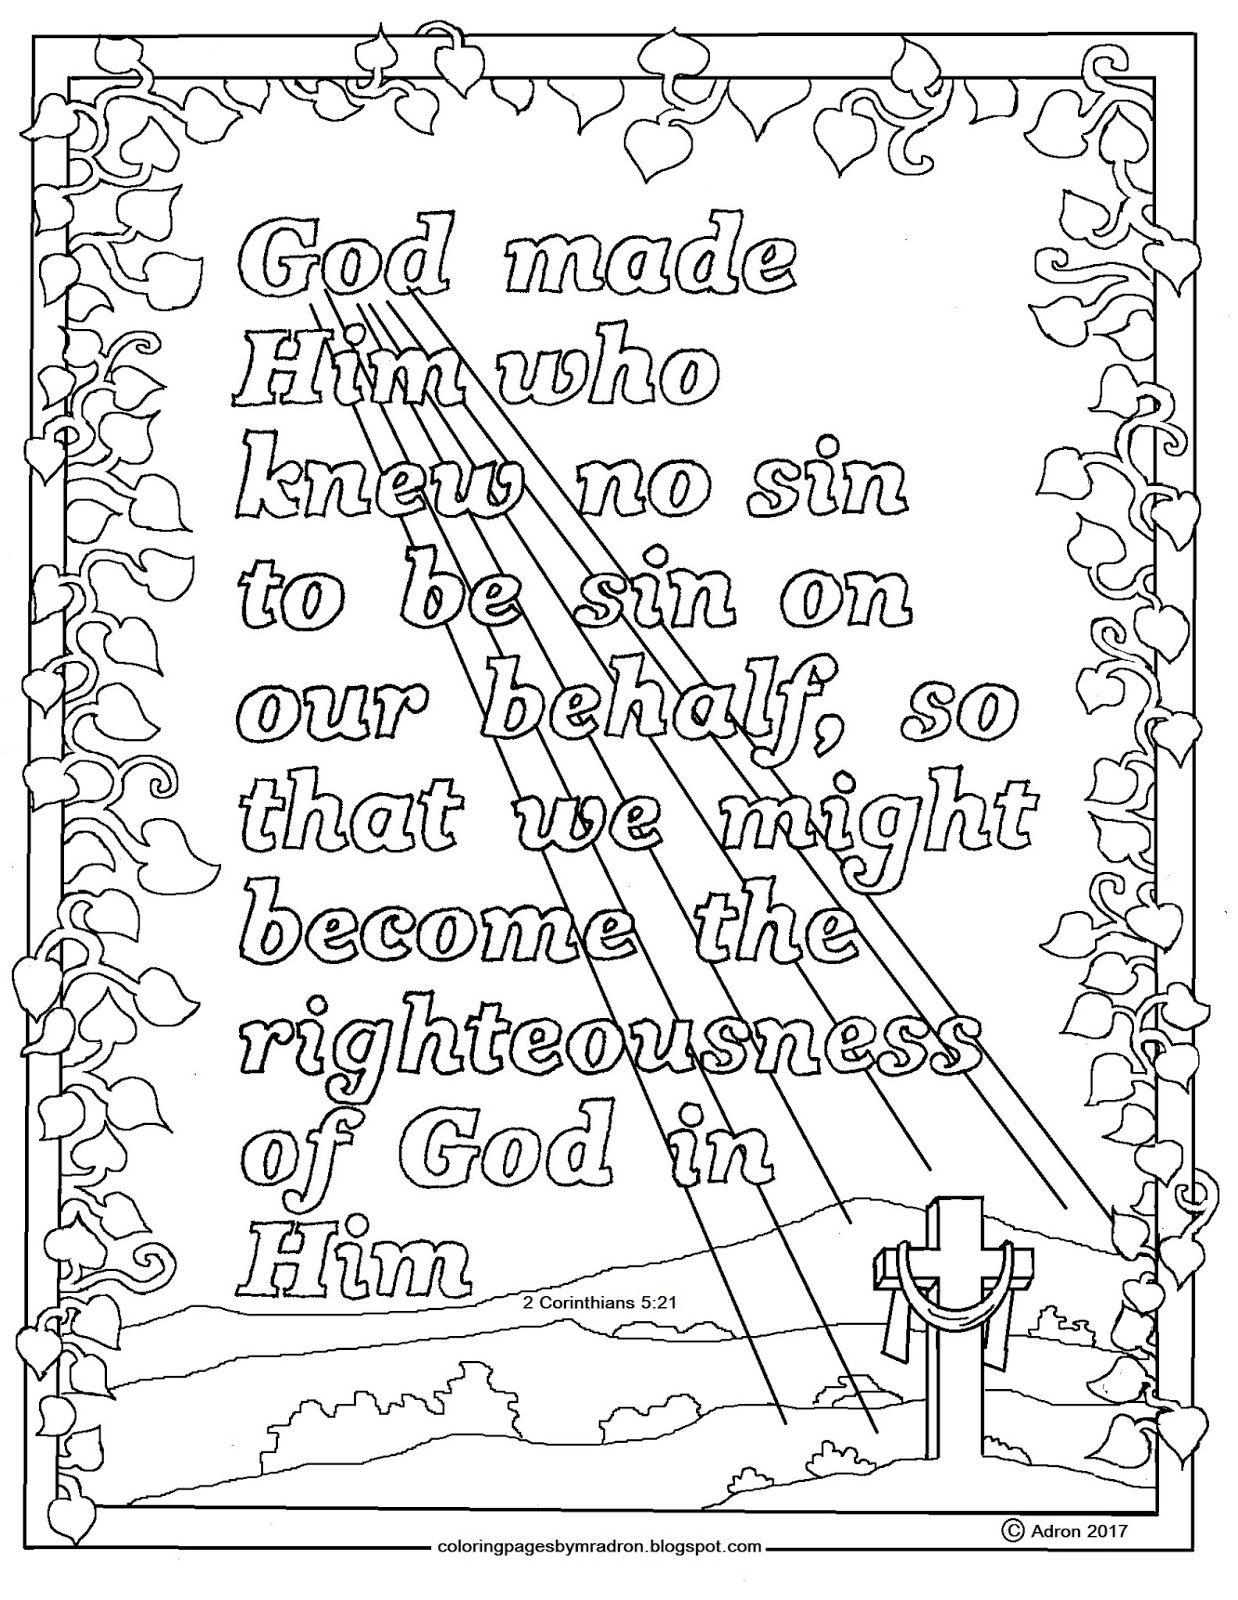 2 Corinthians 5:21 Printable Coloring Page. This is a